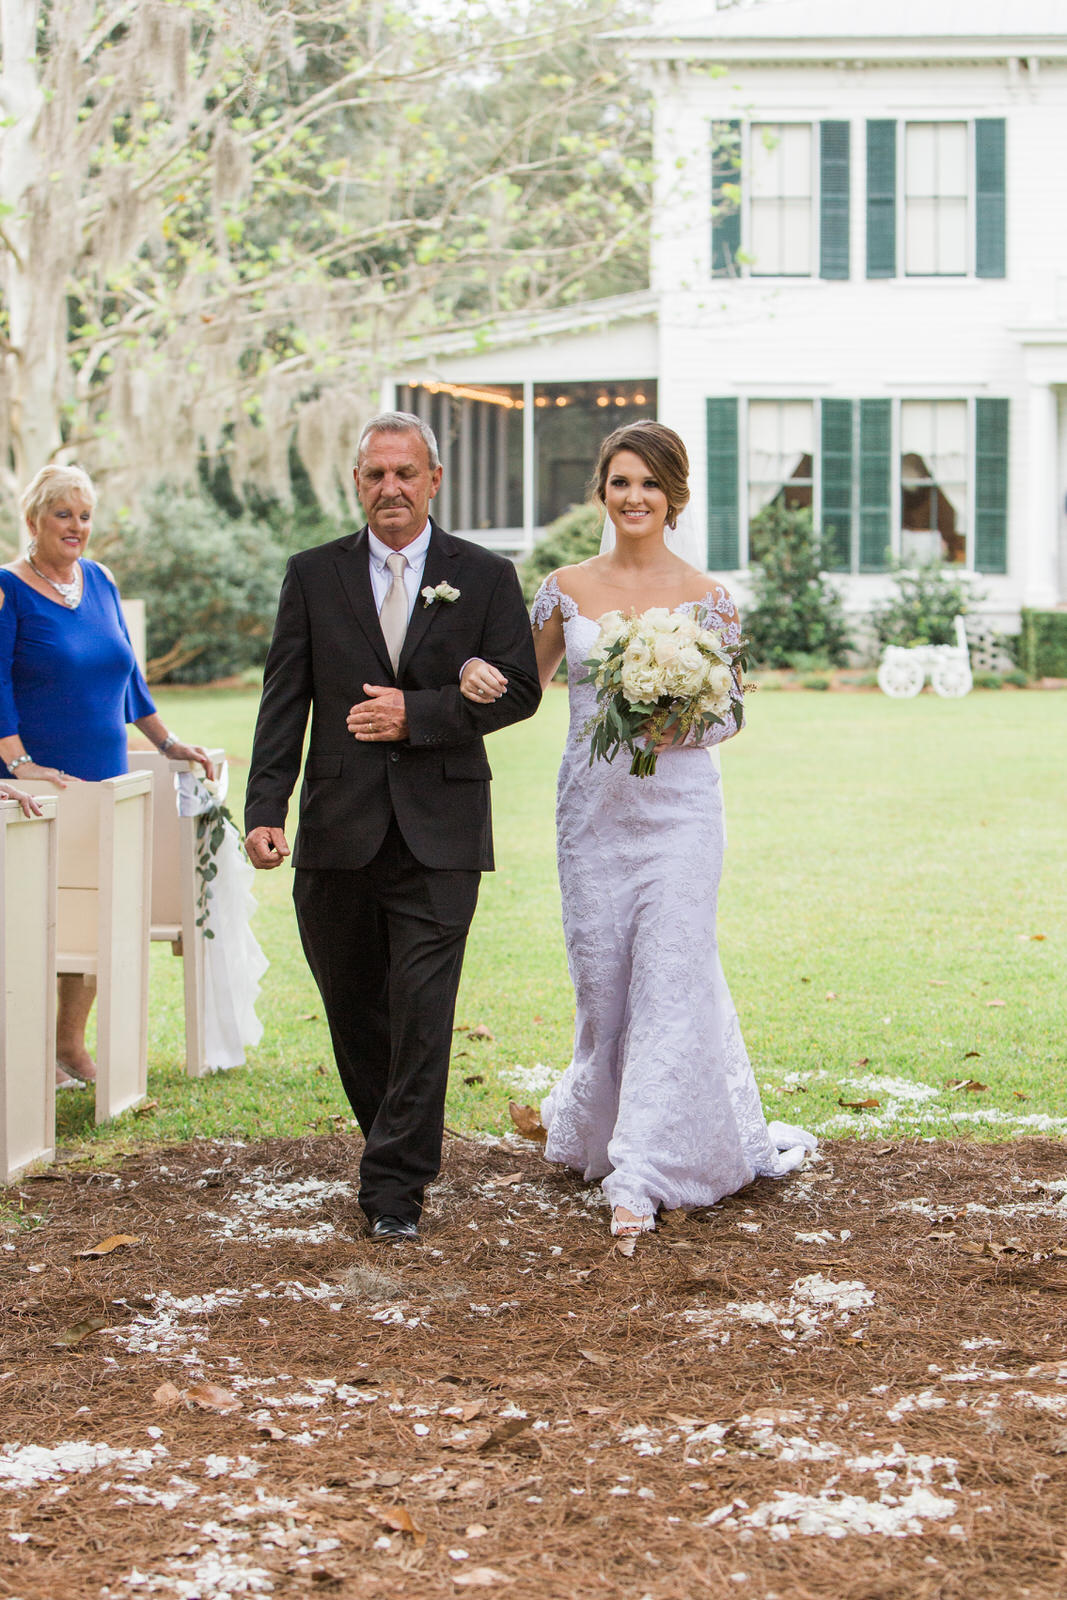 Bride walking down the aisle during outdoor wedding at The Glen Venue, The Linwood in Glen St. Mary, Jacksonville wedding venue